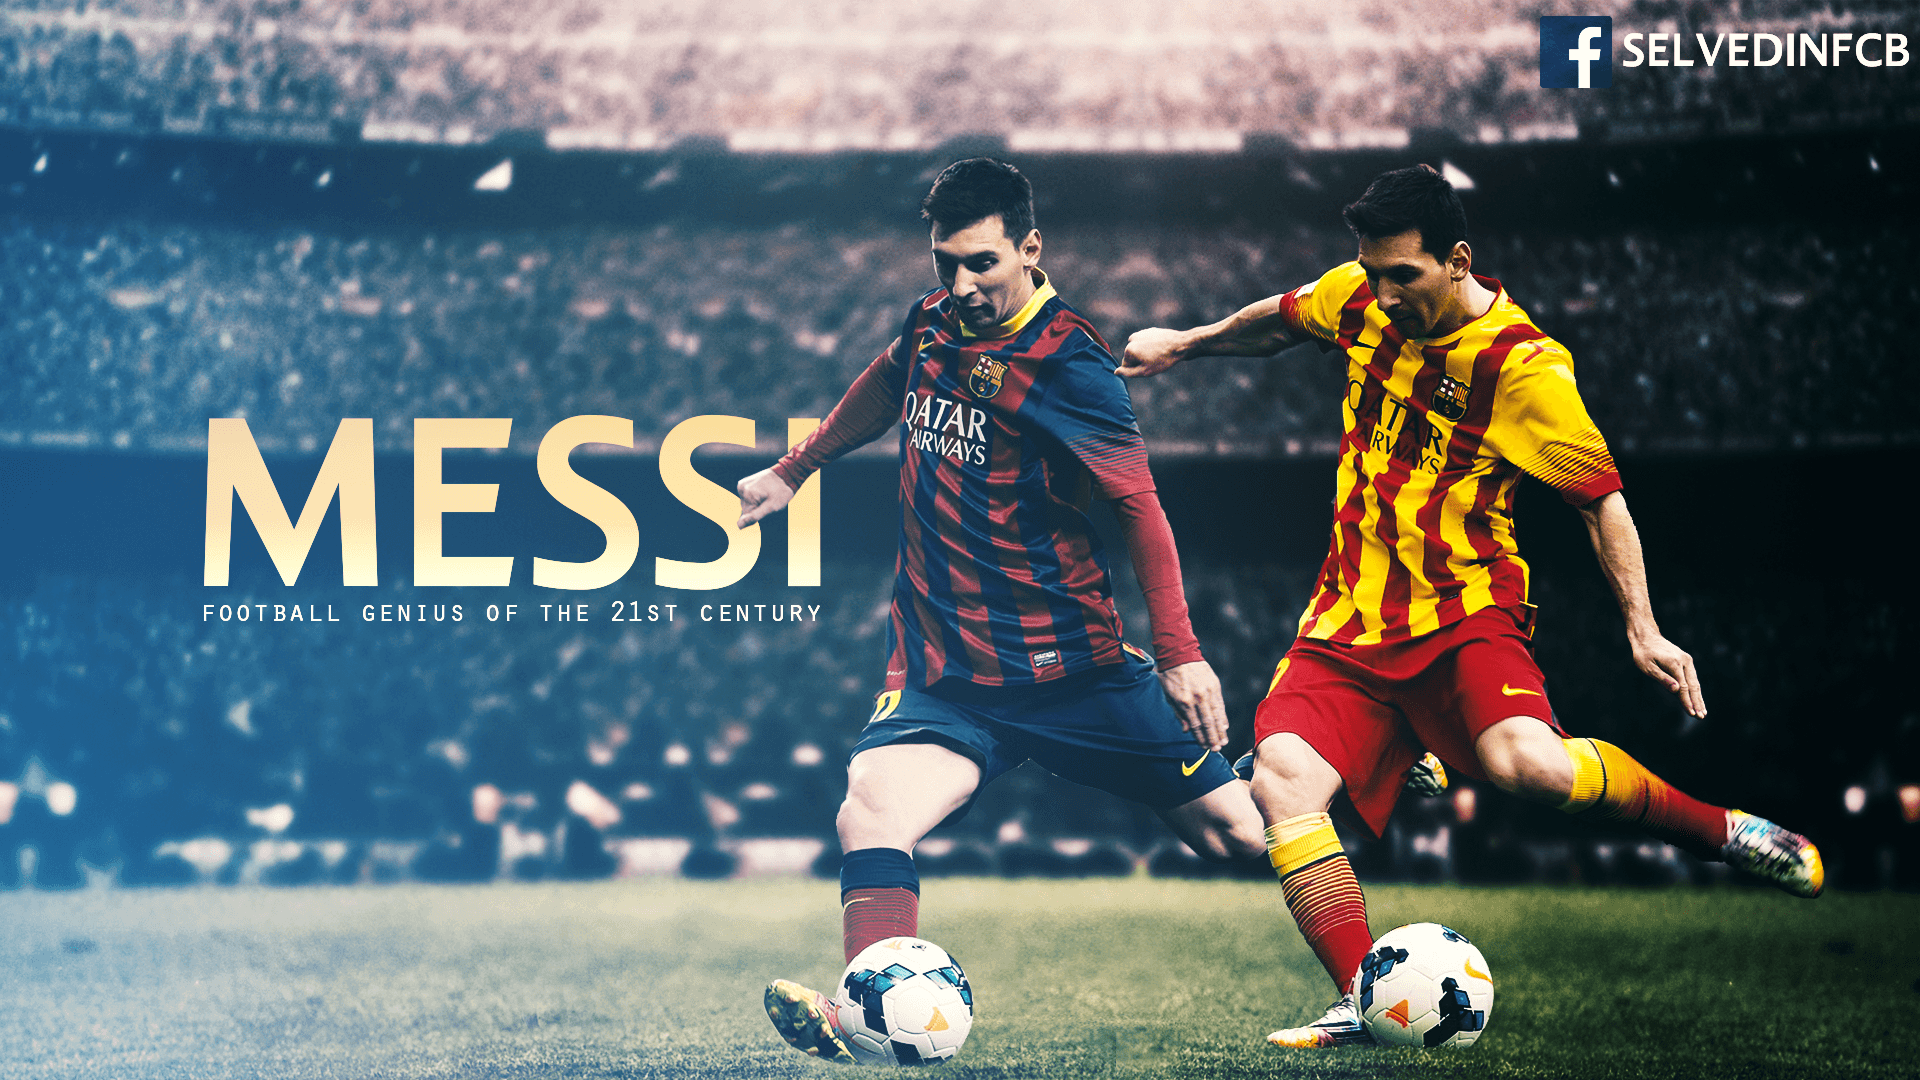 Messi For Pc Wallpapers Wallpaper Cave